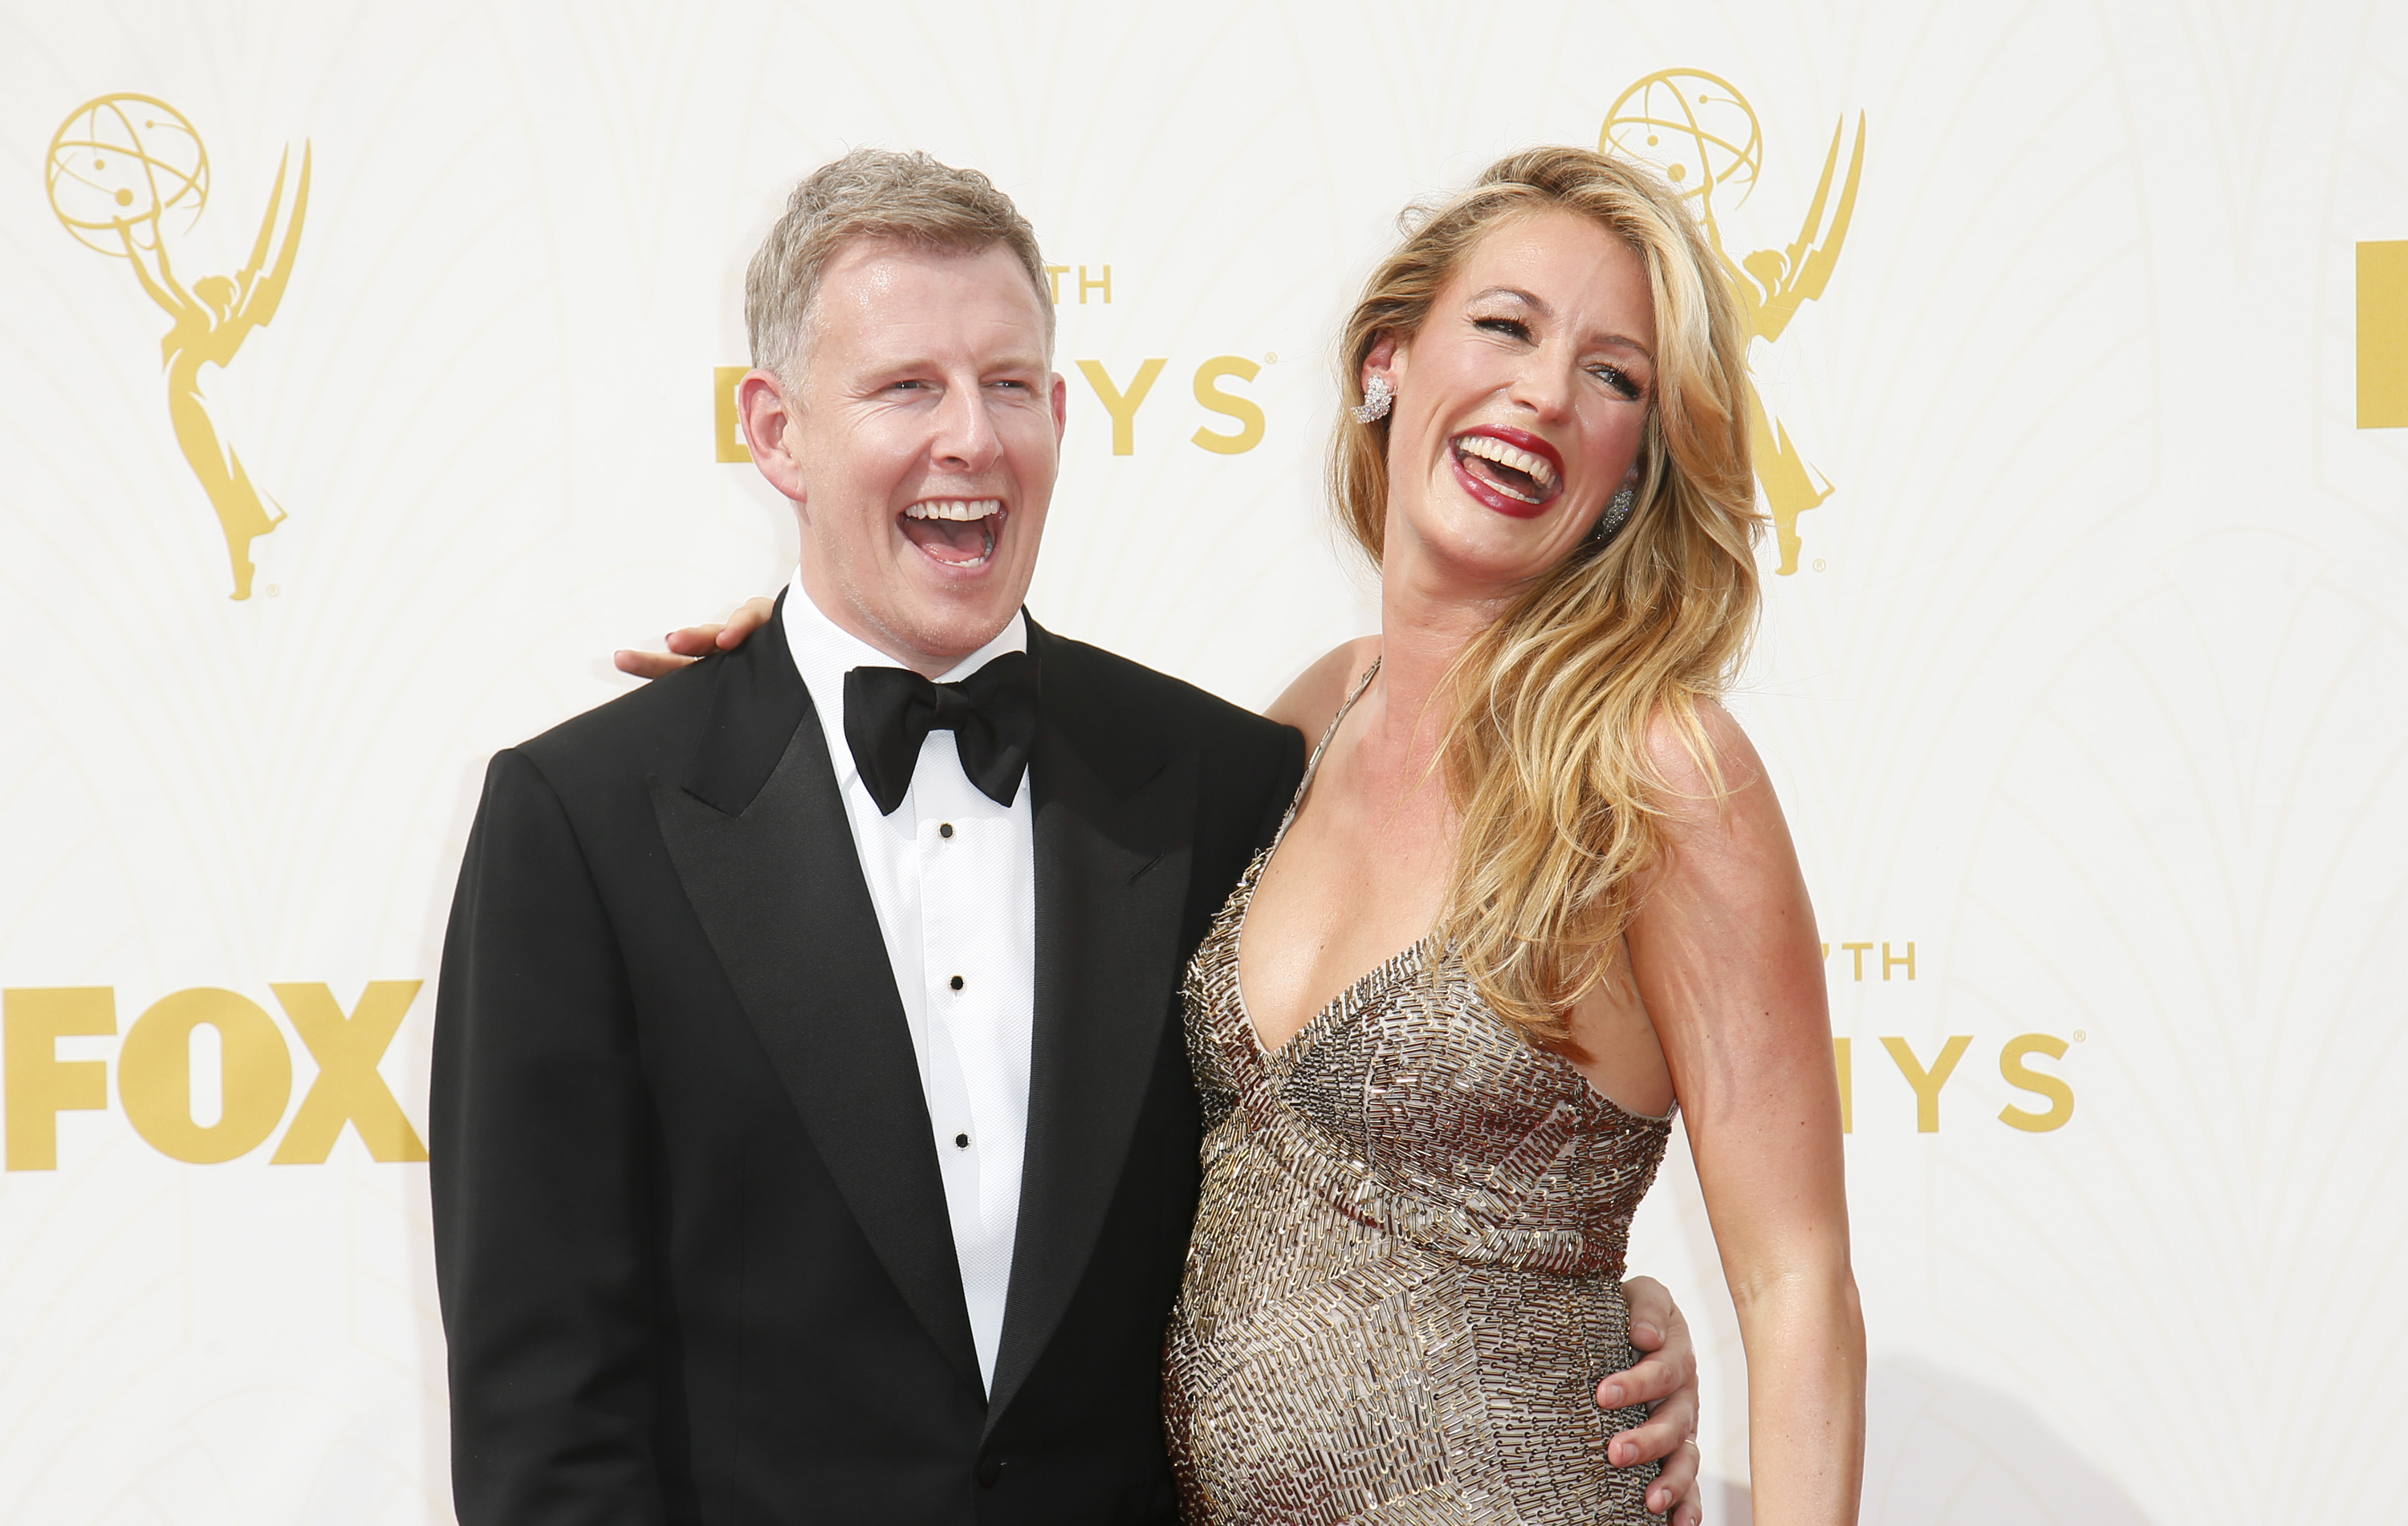 Patrick Kielty, left, and Cat Deeley arrive at the 67th Primetime Emmy Awards on Sunday, Sept. 20, 2015, at the Microsoft Theater in Los Angeles. (Photo by Danny Moloshok/Invision for the Television Academy/AP Images)